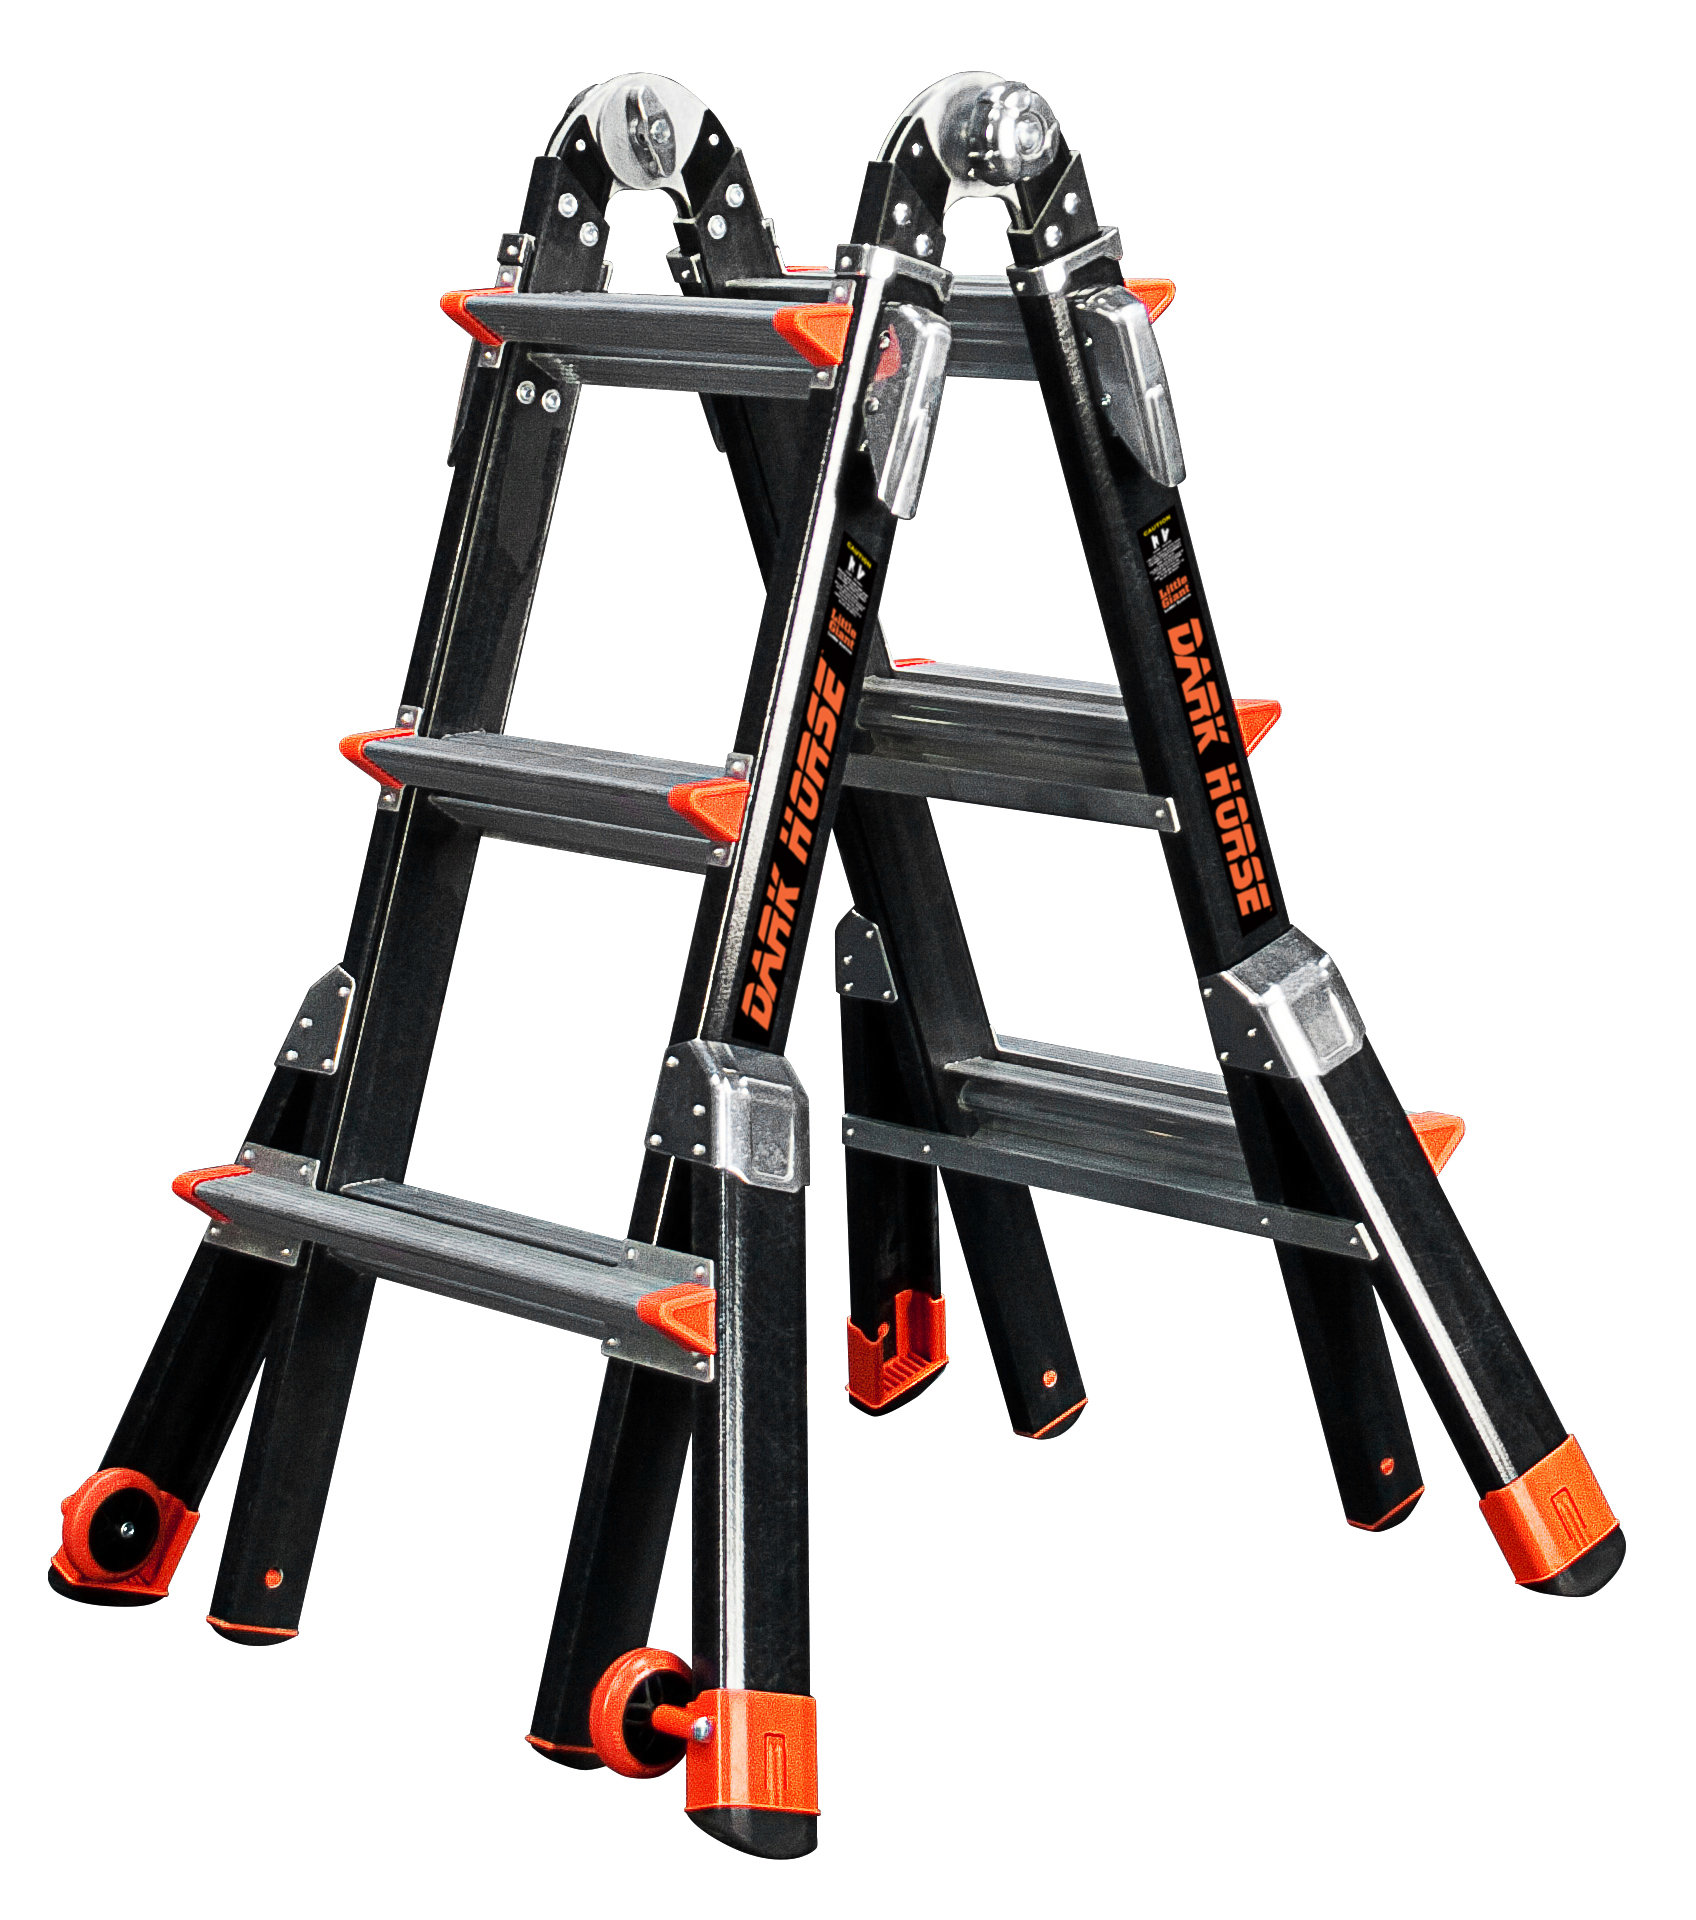 Little Giant Dark Horse, Model 13 Type IAA 375 lbs rated, fiberglass articulating ladder by Wing Enterprises, Inc.